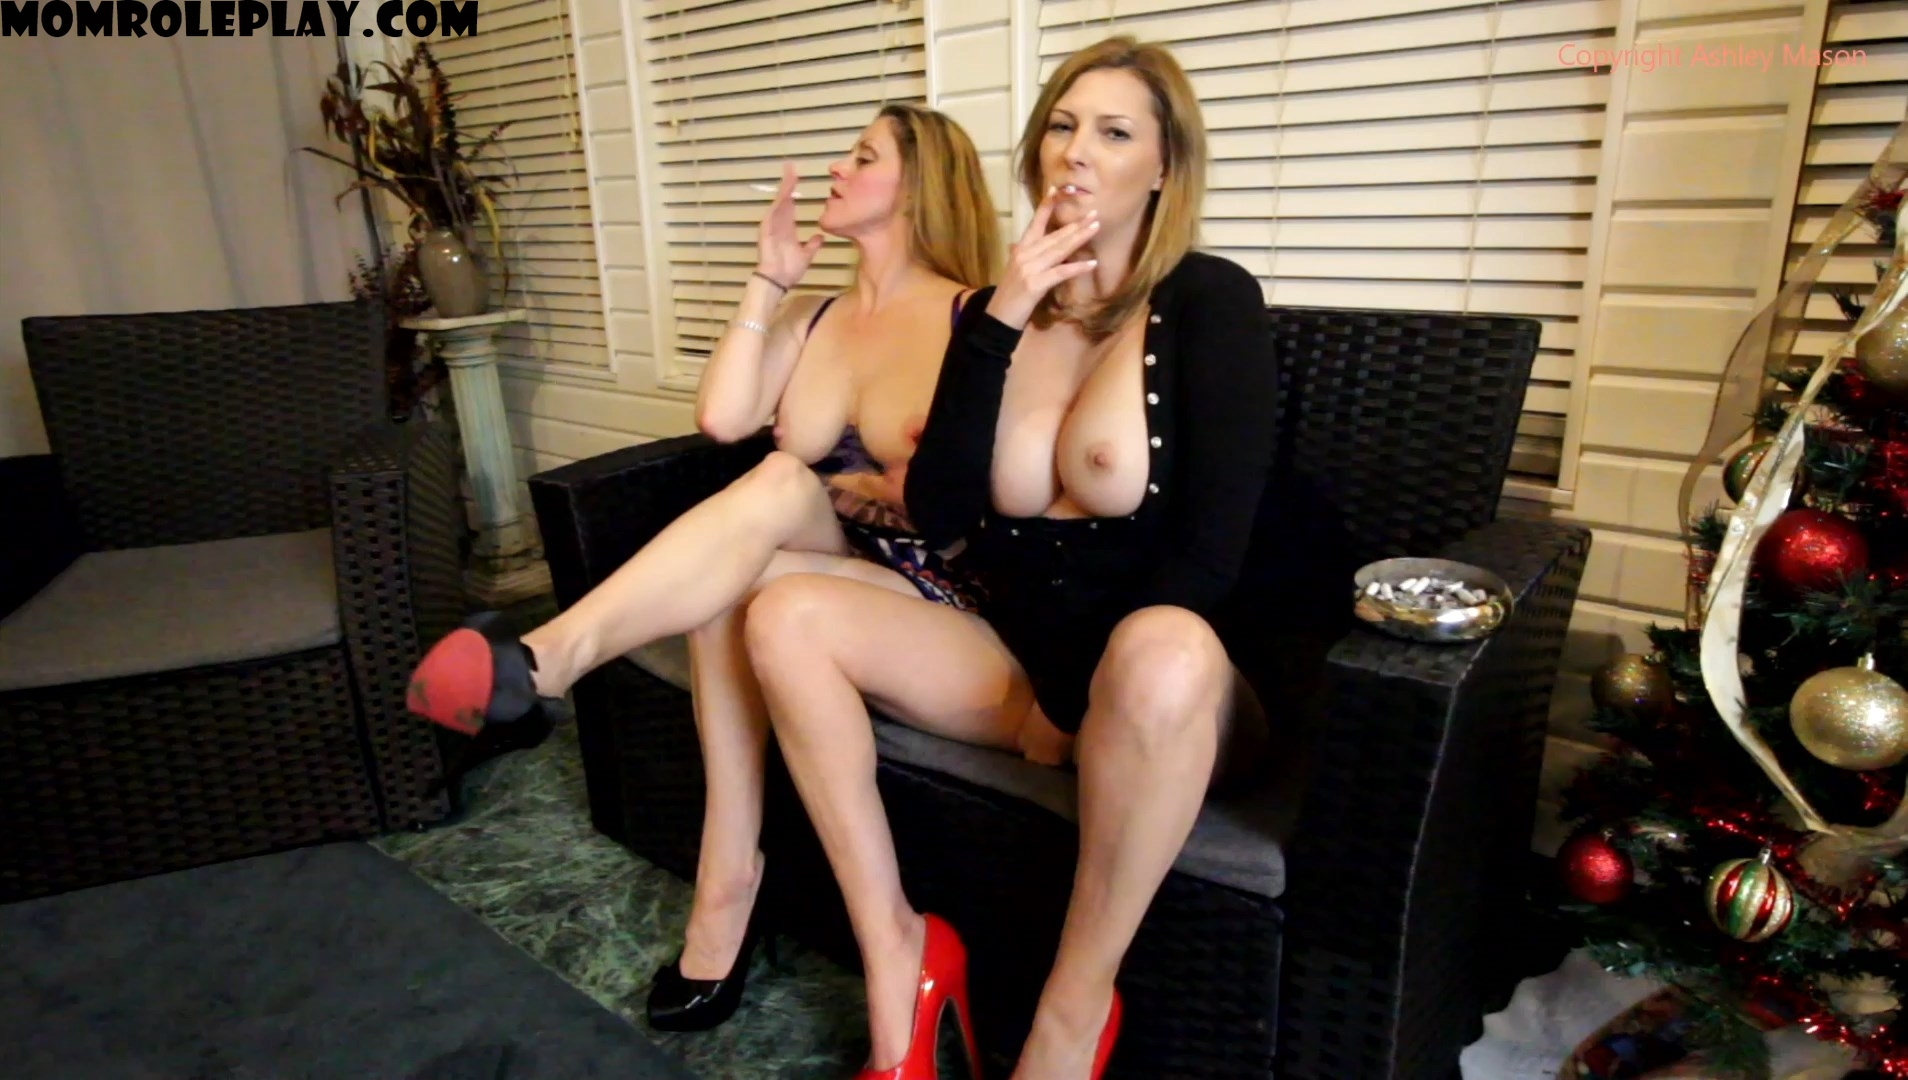 Ashley Masons Play House - Mommy and Auntie Creampie And Facials 1080p